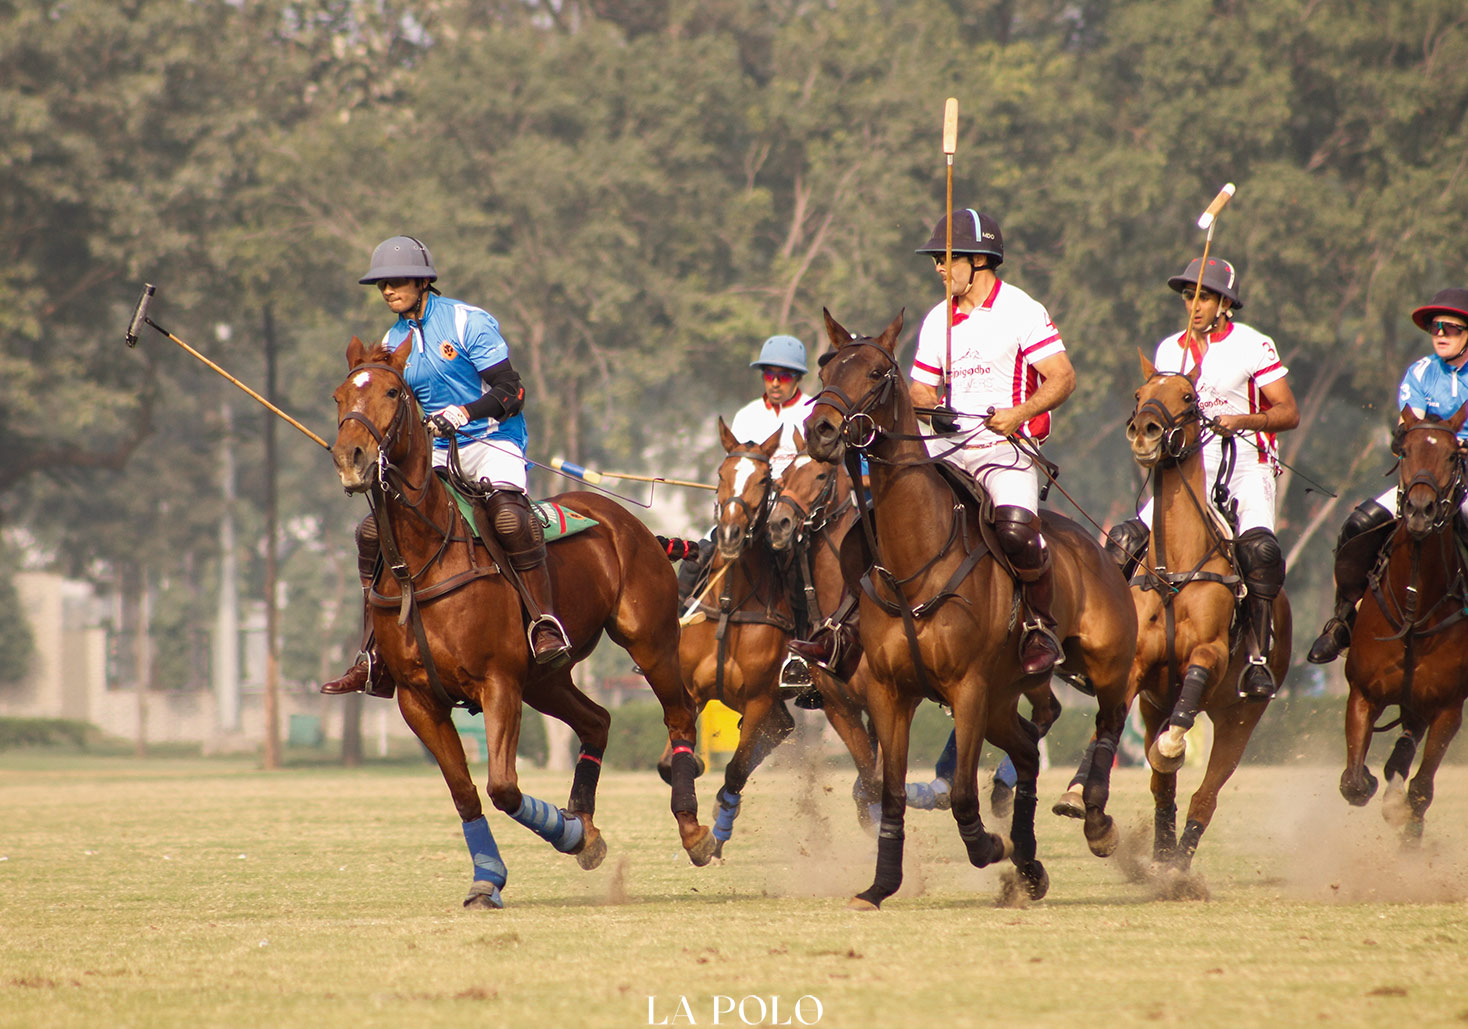 polo-players-in-india-lapolo